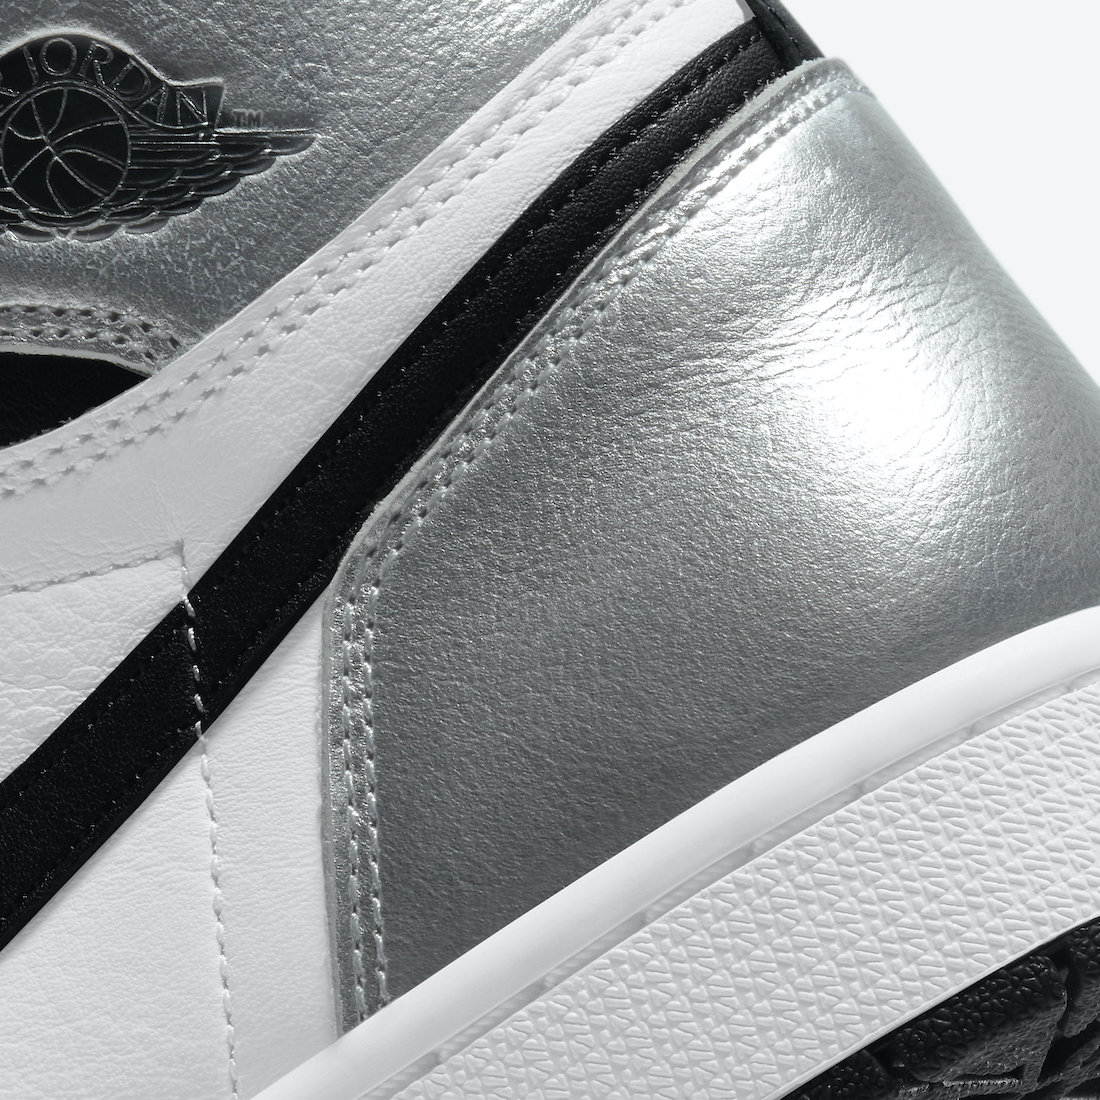 Air-Jordan-1-Silver-Toe-CD0461-001-Release-Date-Price-7